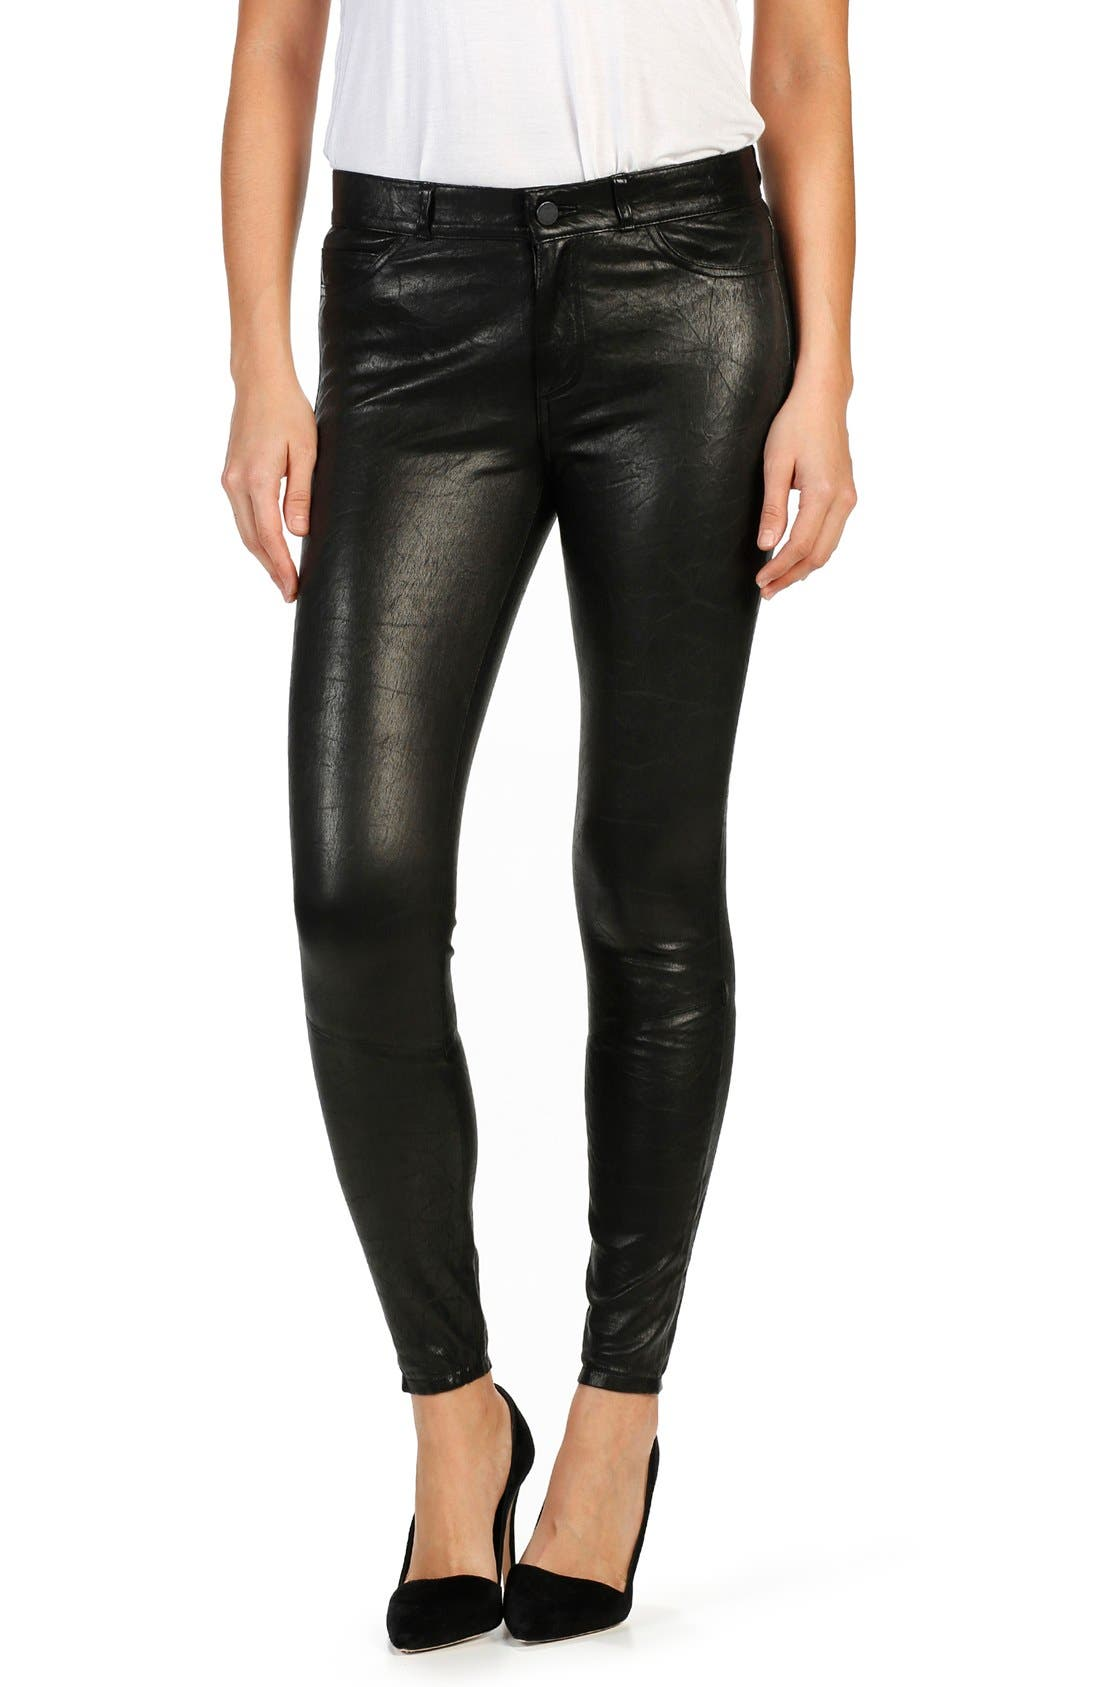 PAIGE 'Verdugo' Ankle Skinny Leather Pants